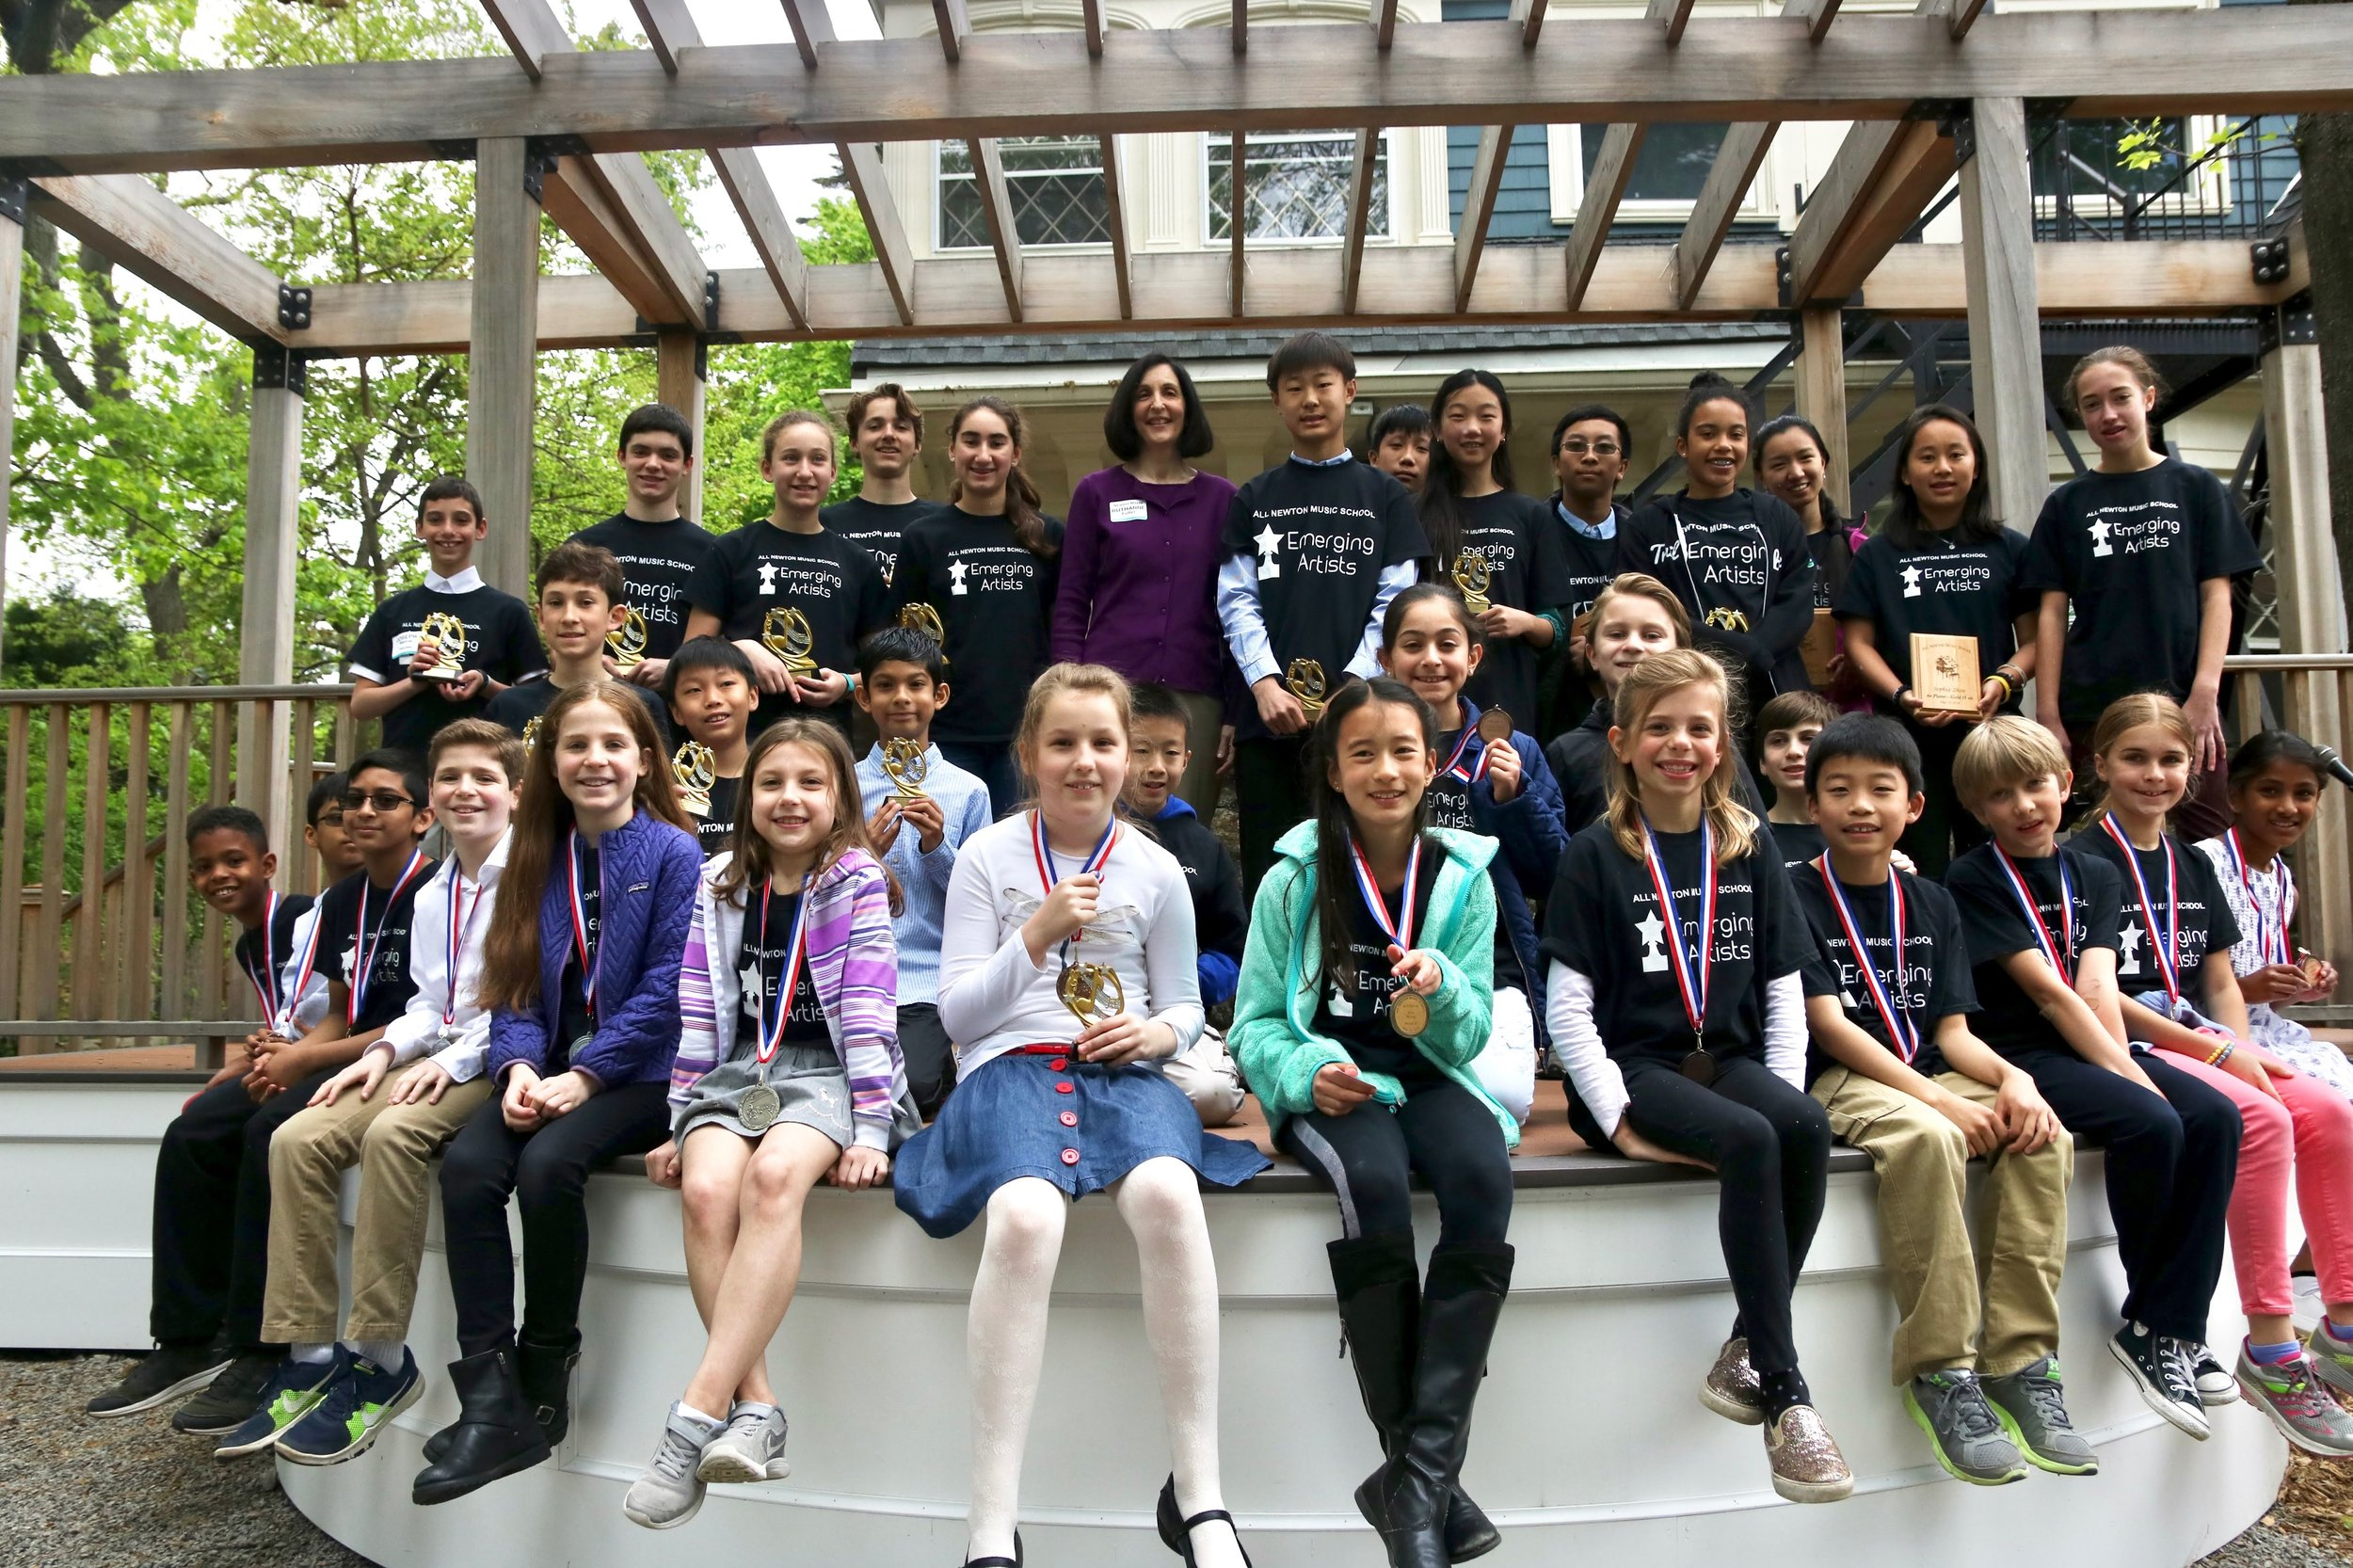 - ANMS Emerging Artists is a private lesson enrichment program, for ages 8-18, designed to bolster your child's musical journey. Students become part of the EA community, developing performing and listening skills, while also connecting with other musicians. Emerging Artists are recognized at Music in May and receive a medal or trophy.Each student is placed into a level by the teacher and program coordinator